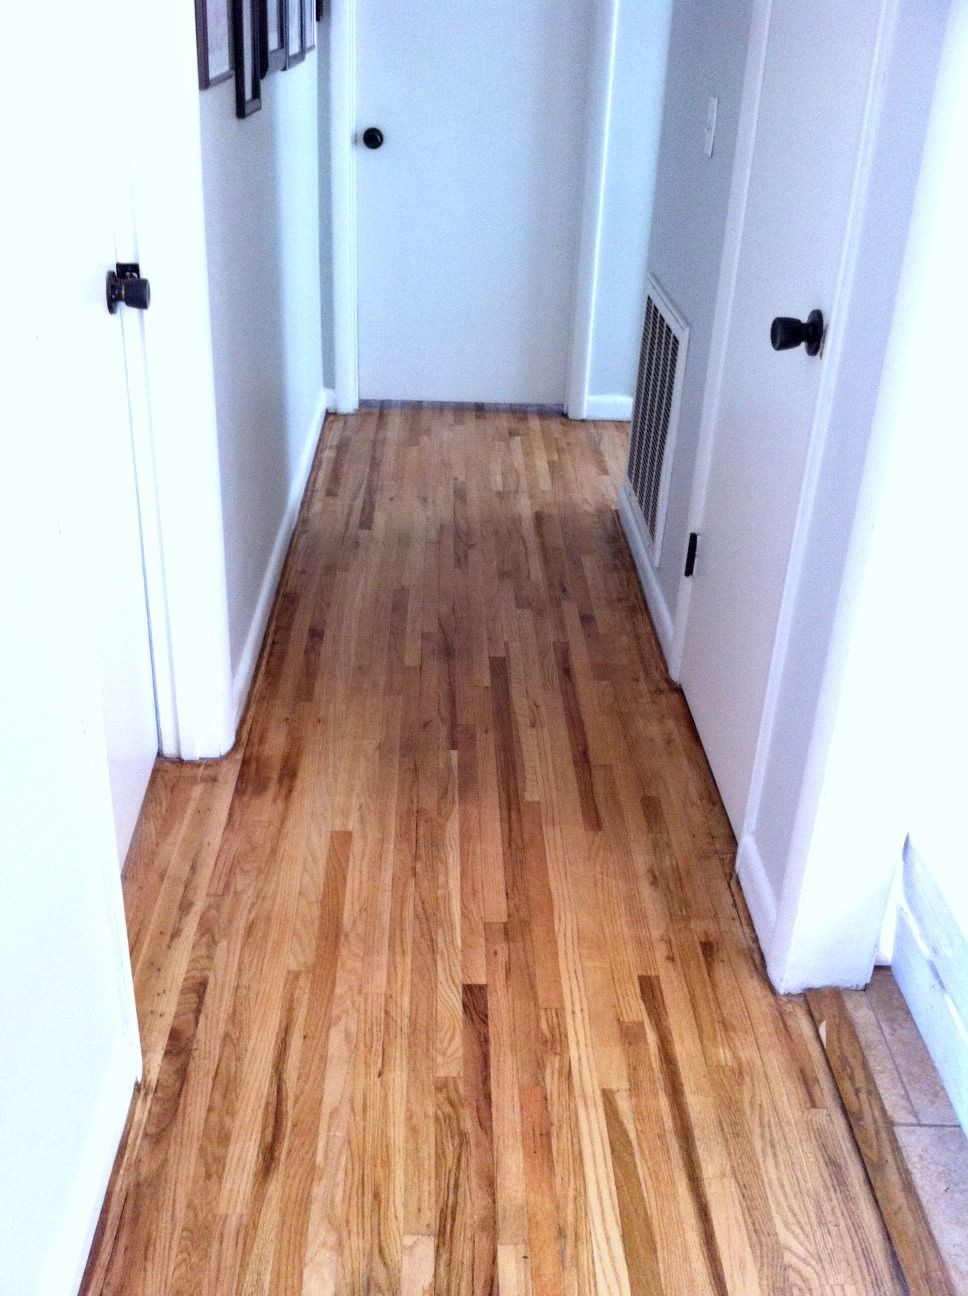 hardwood floor refinishing twin cities of this is what happens when you dont listen to the folks at lowes throughout refinishing hardwood floors includes price breakdown mom in music city i didnt stain my floors i think the natural wood goes well with our house